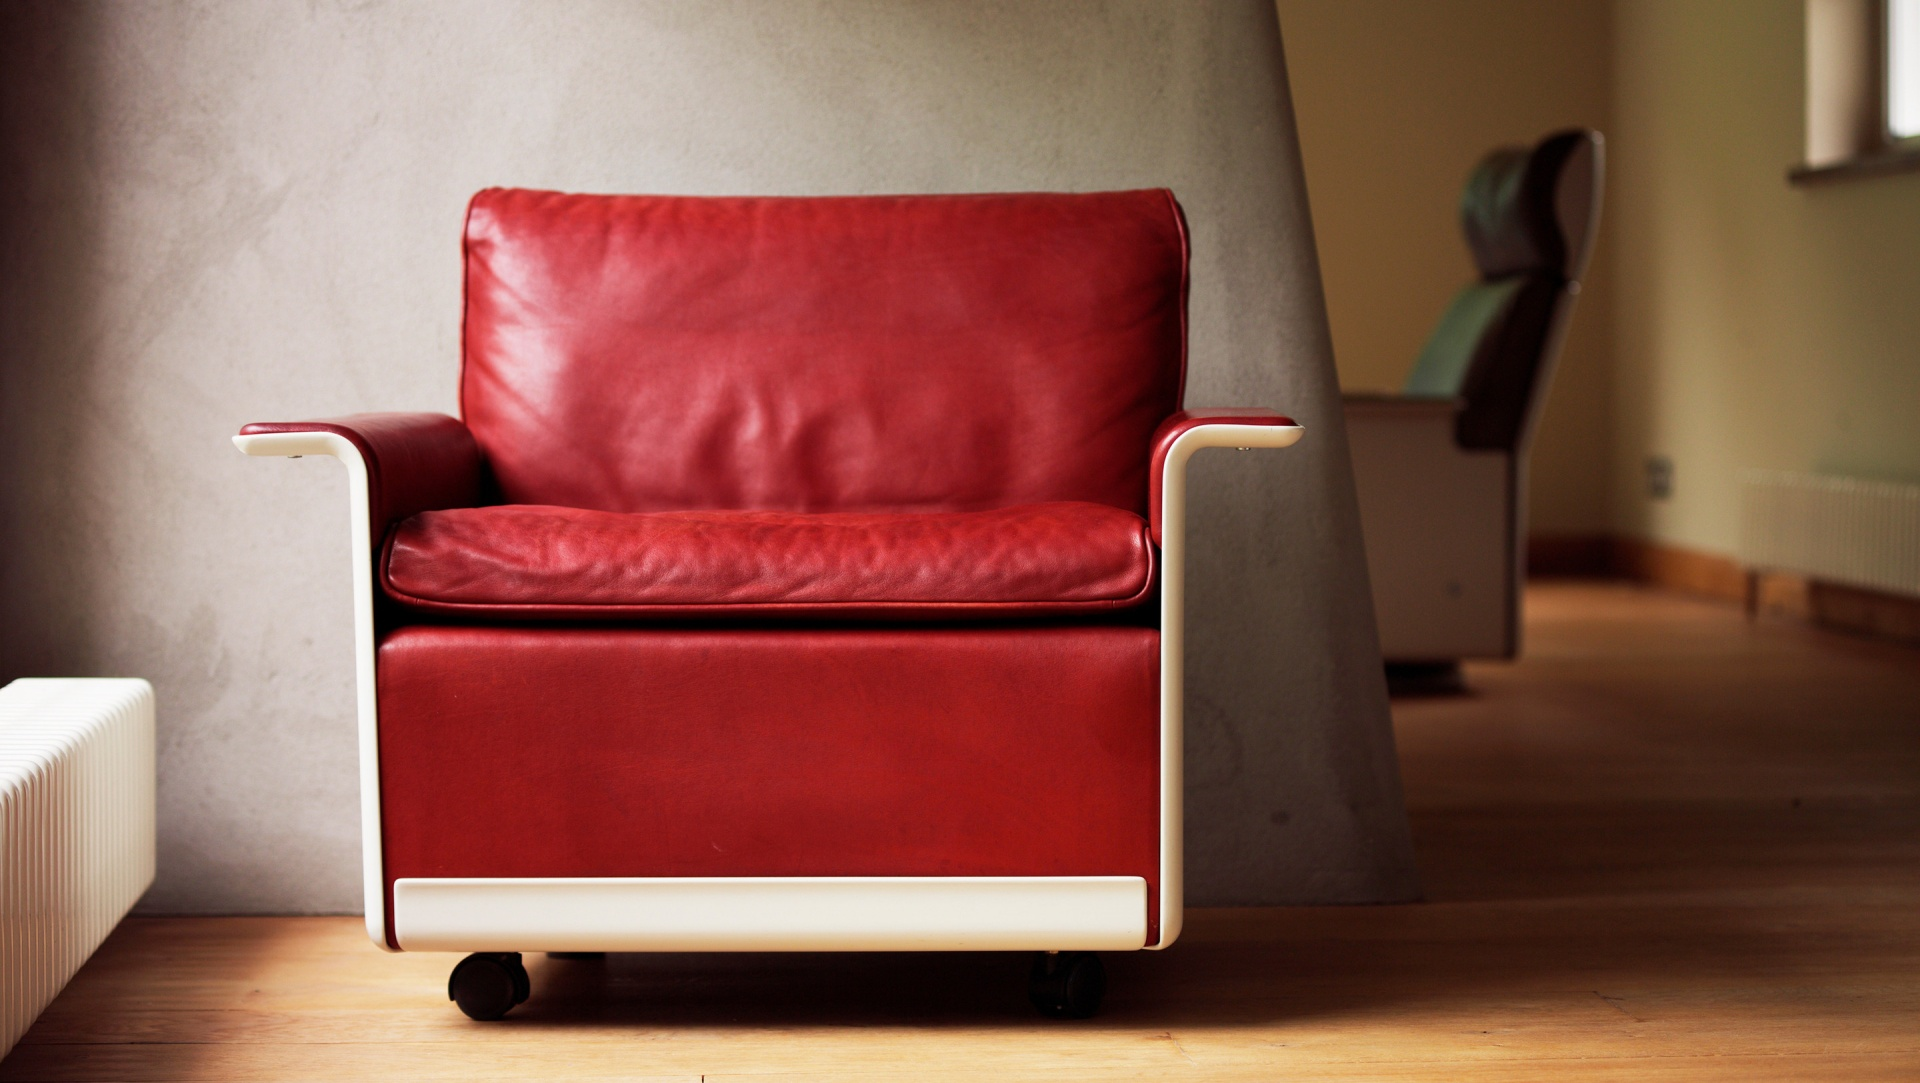 """The sumptuous leather will only improve with age. Neils Vitsoe once said, """"the first mark is a tragedy, the second is a shame, the third will be patina."""" As usual, he was right"""